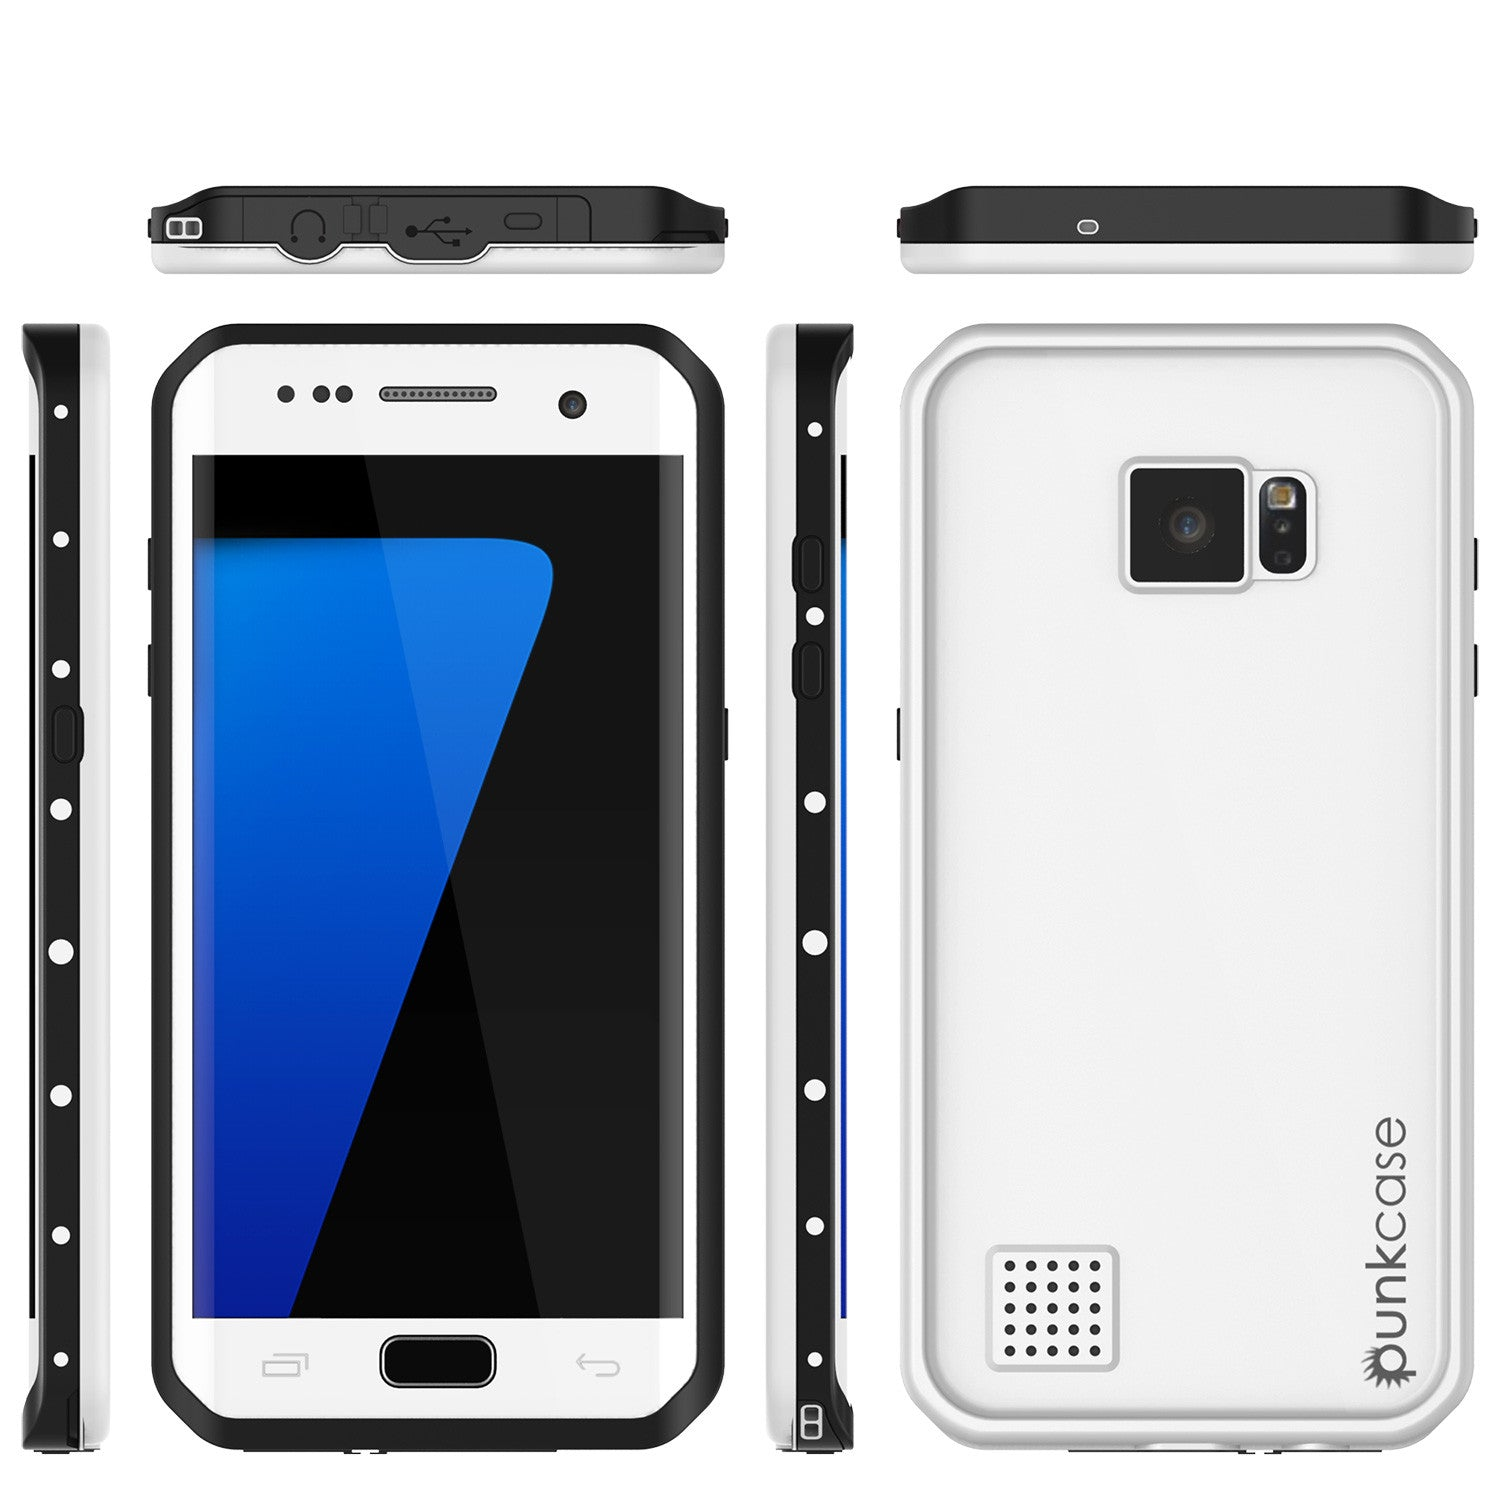 Galaxy S7 EDGE Waterproof Case, Punkcase StudStar White Thin 6.6ft Underwater IP68 Shock/Snow Proof